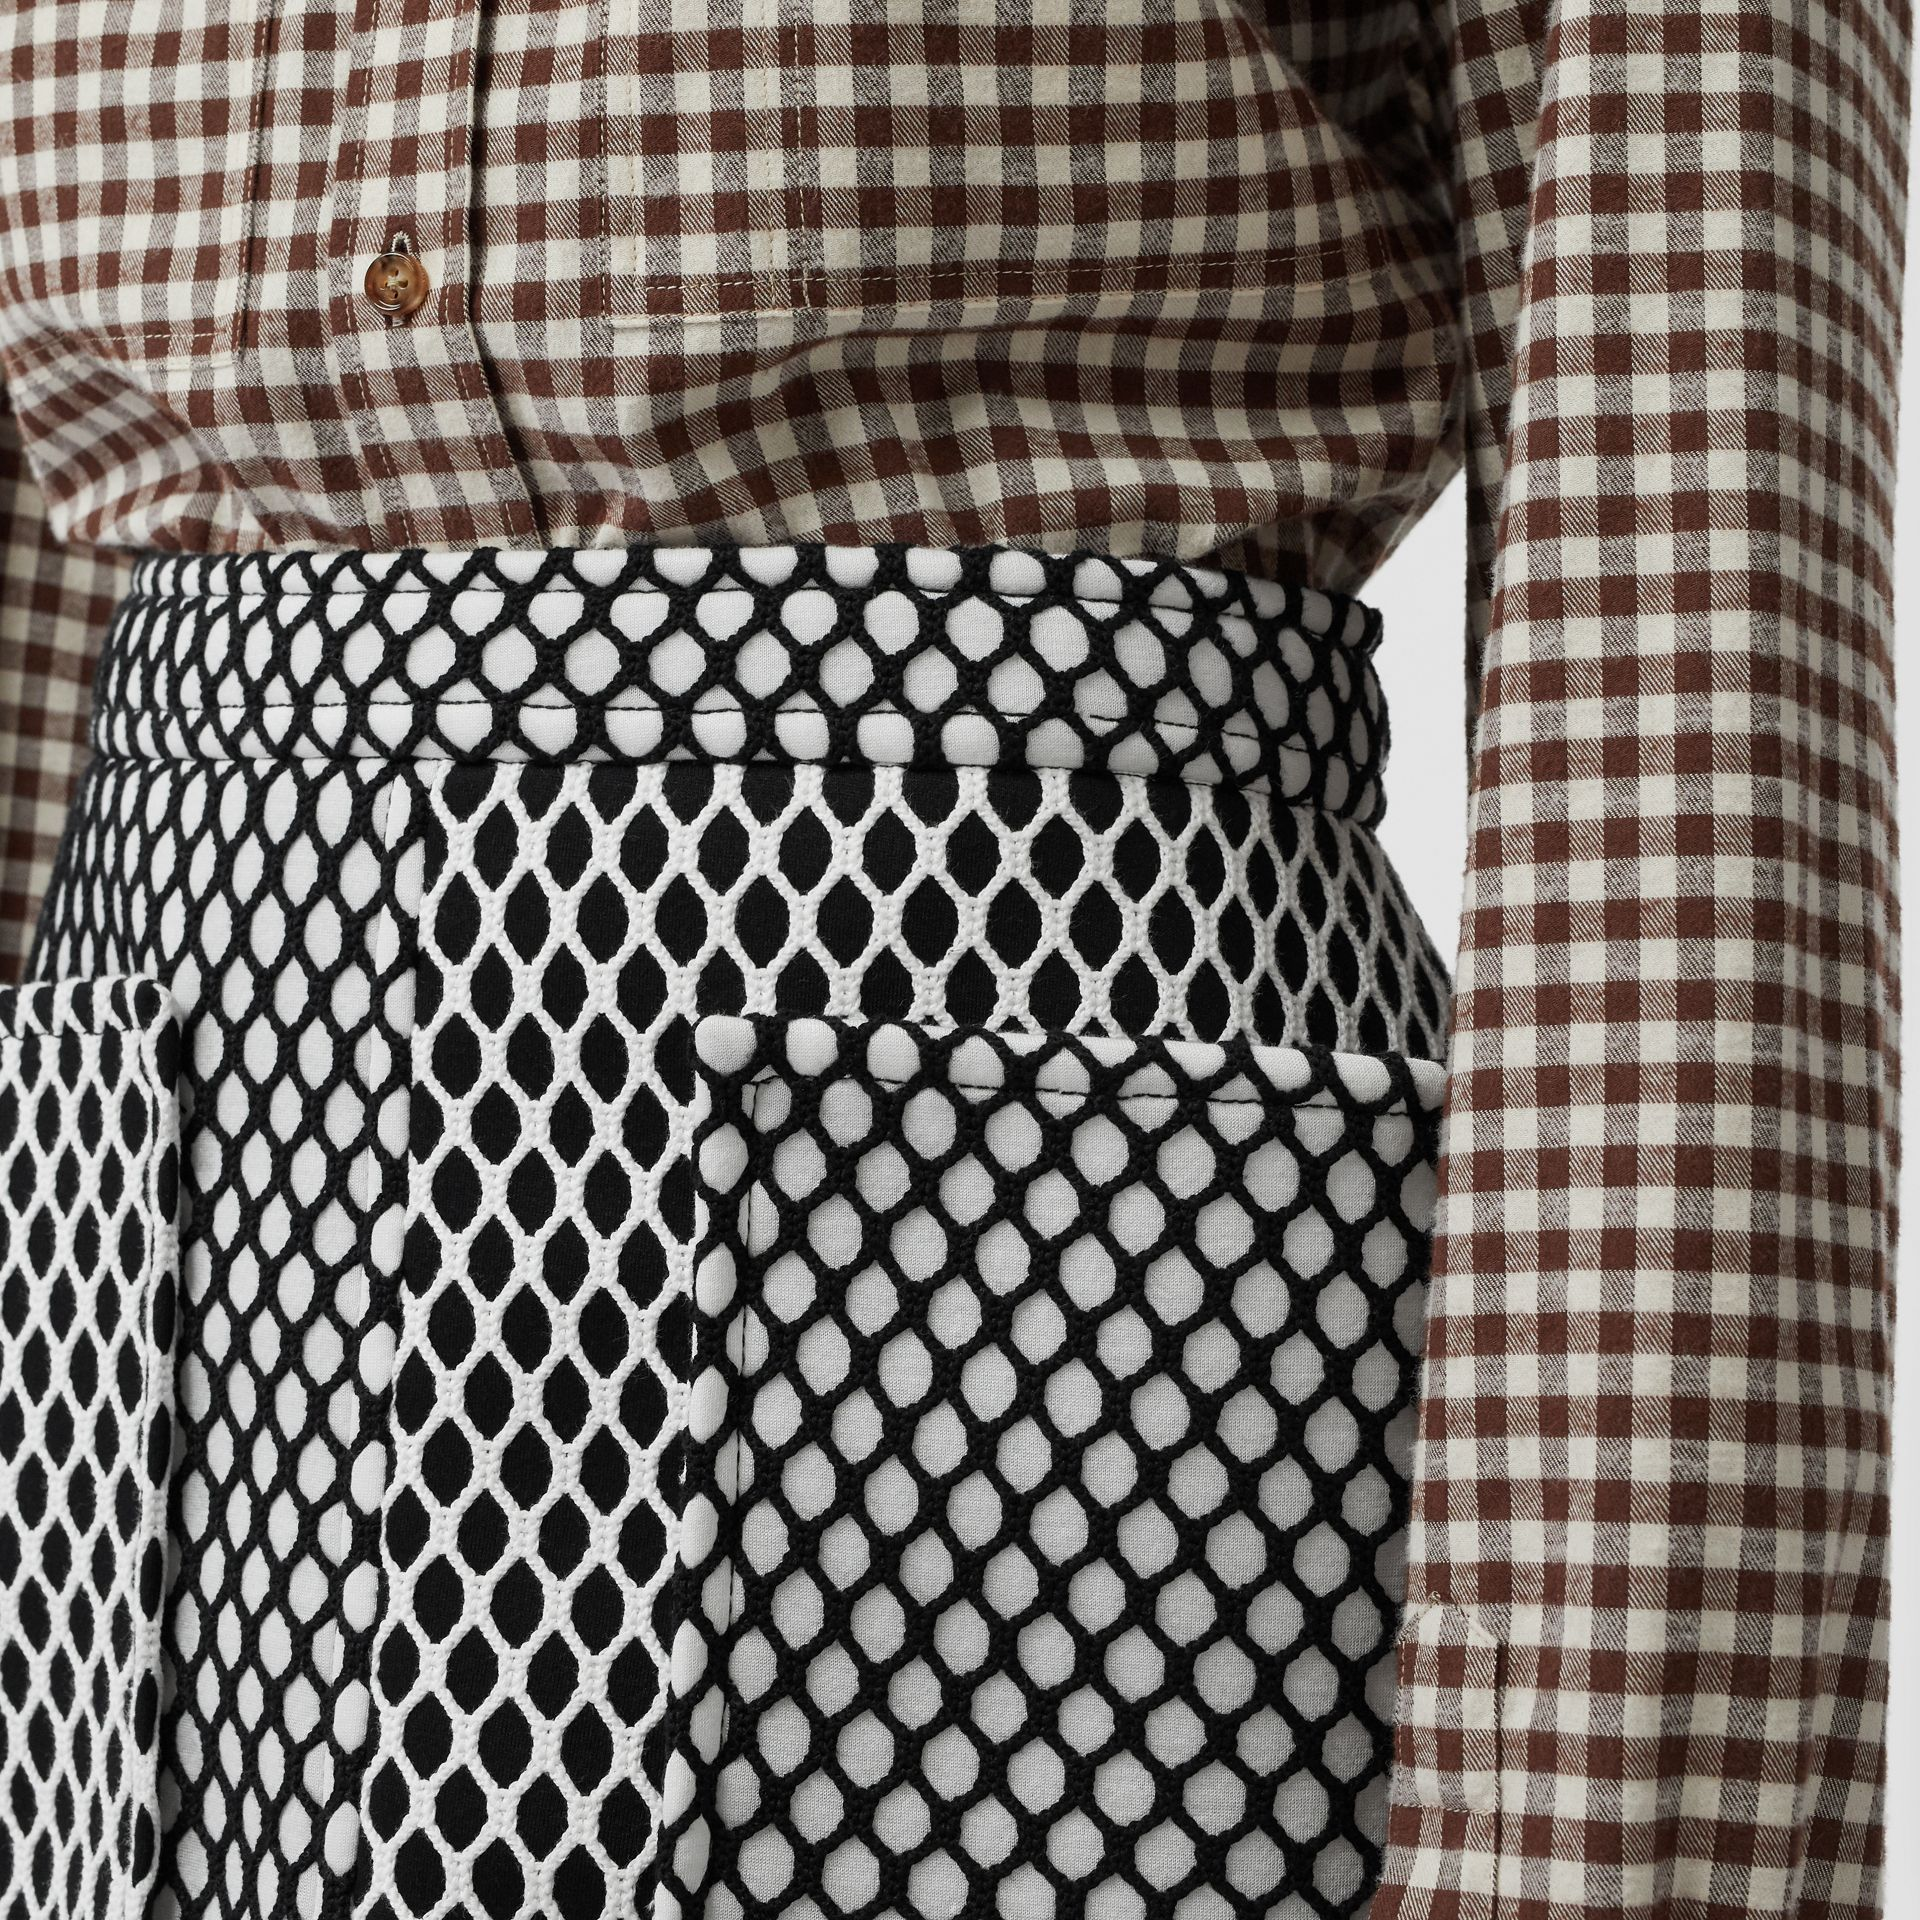 Pocket Detail Mesh and Neoprene Mini Skirt in Black - Women | Burberry - gallery image 1